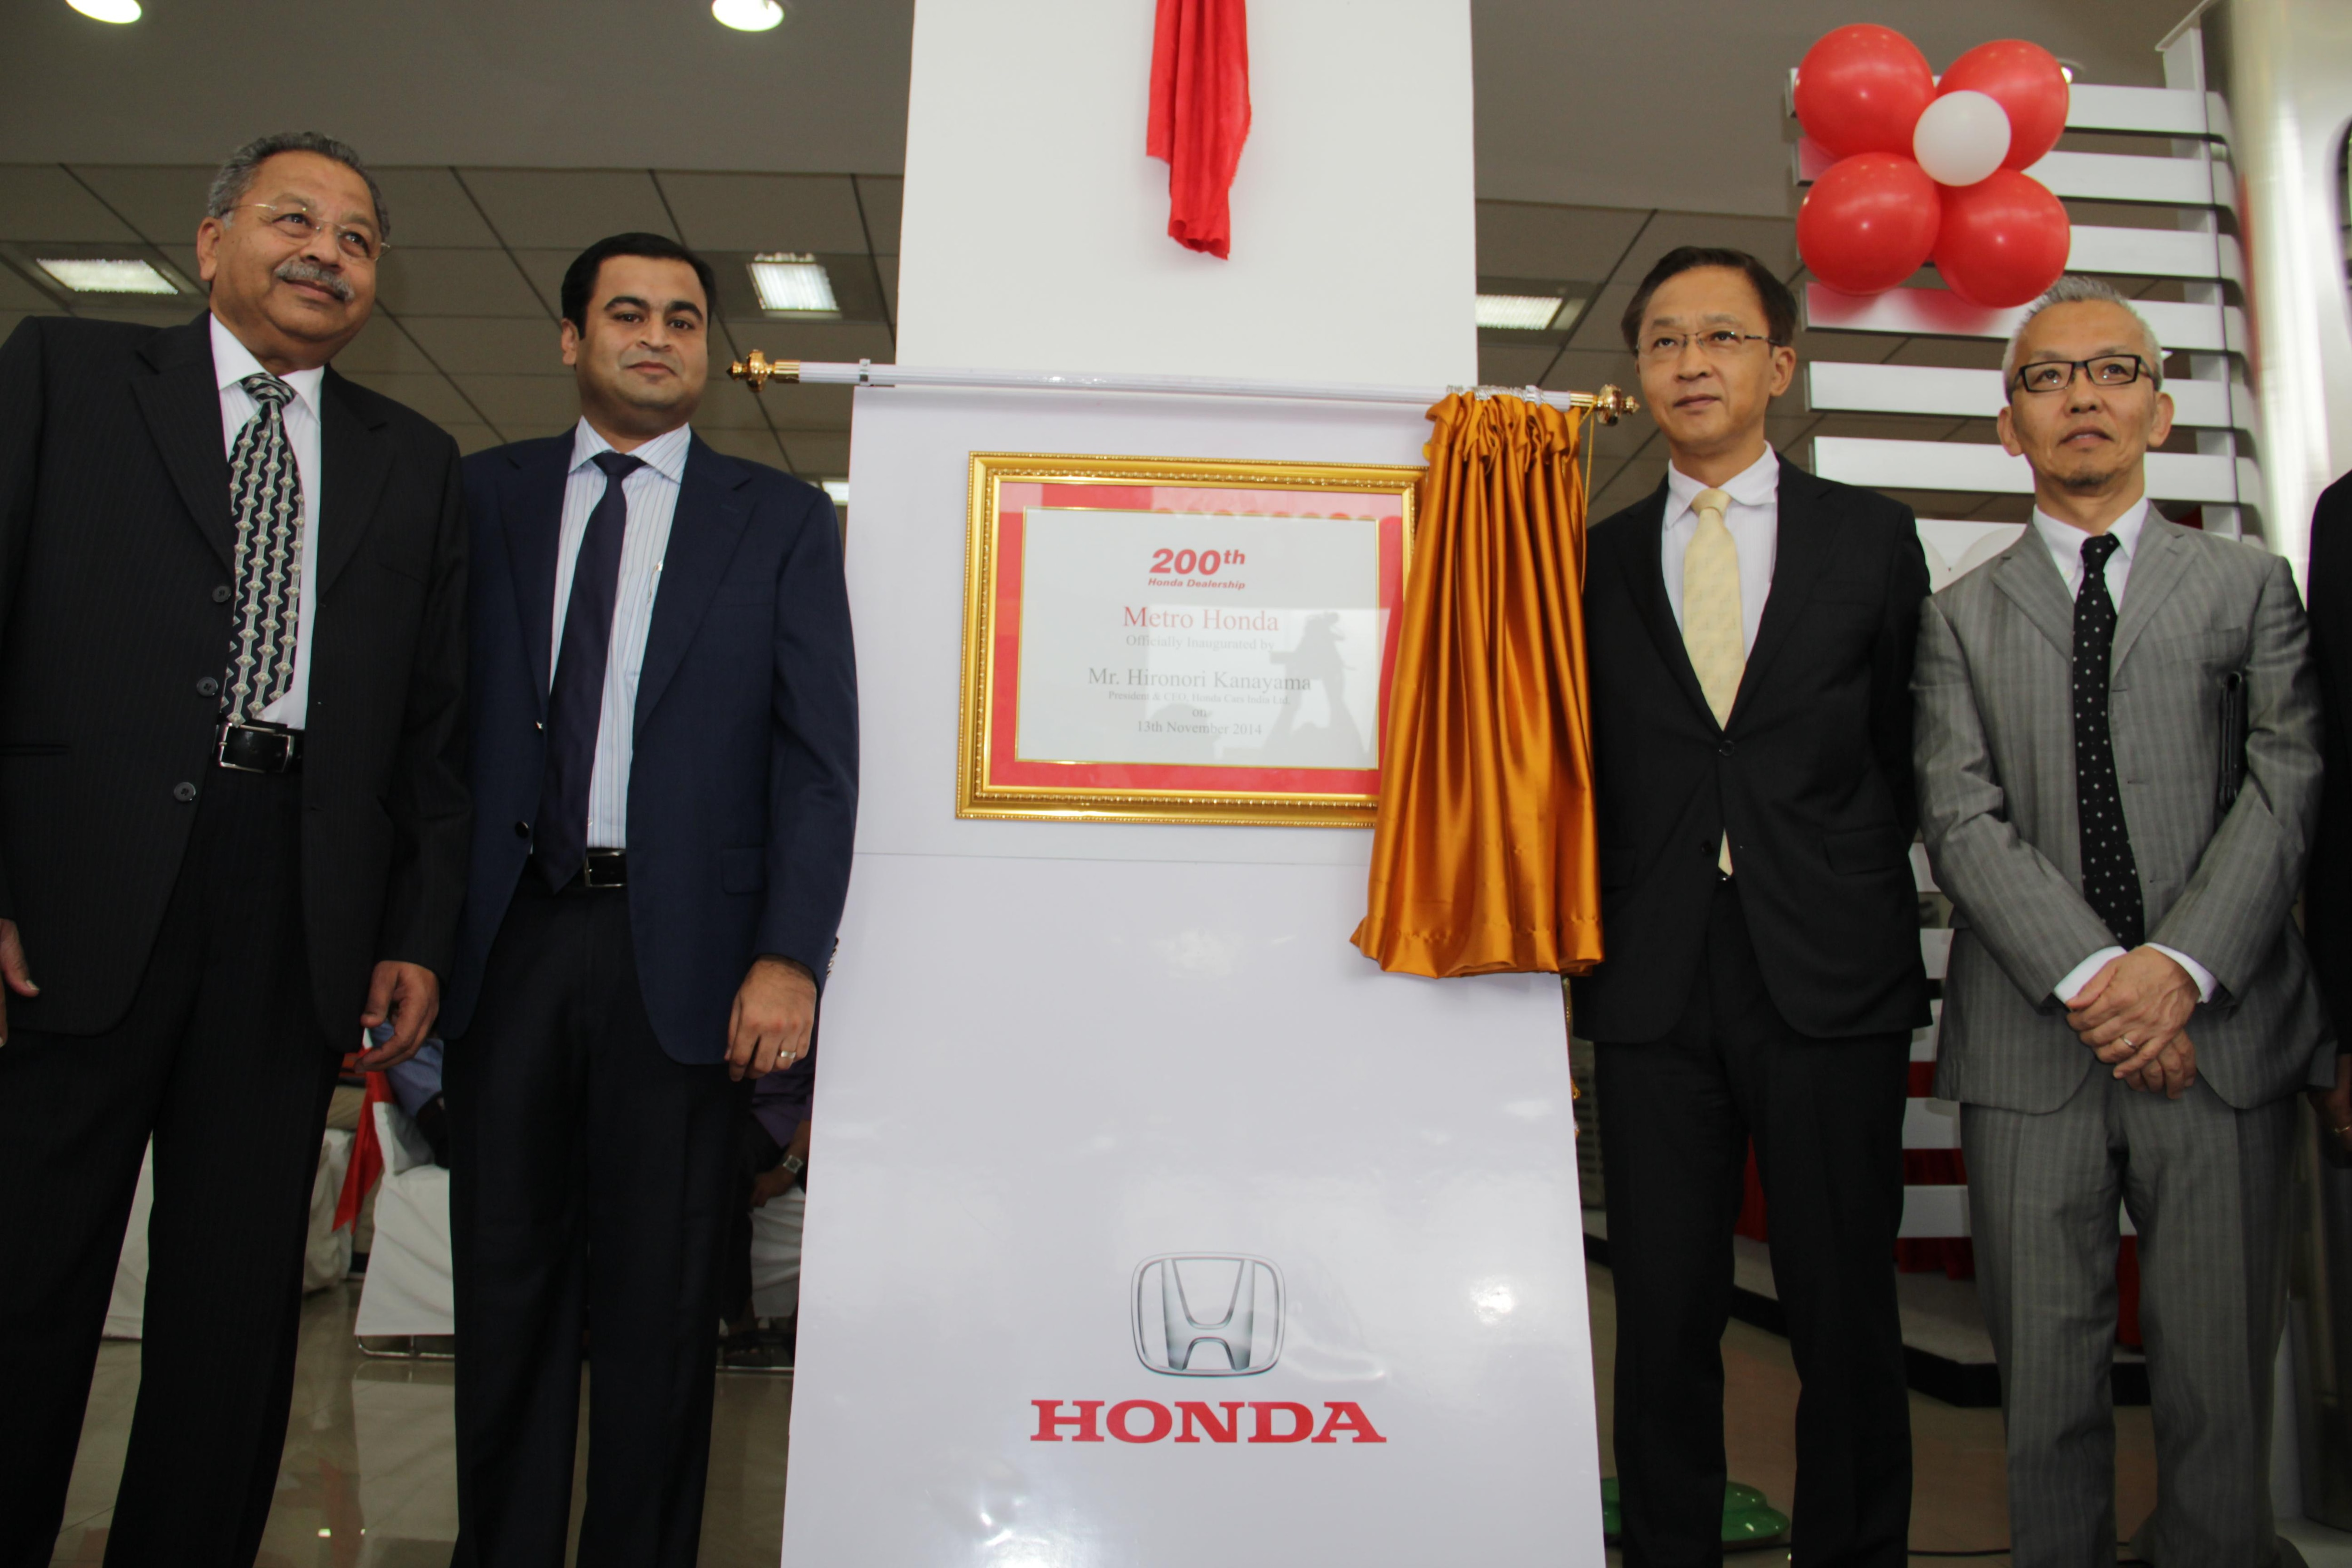 Honda Cars India inaugurates its 200th dealership